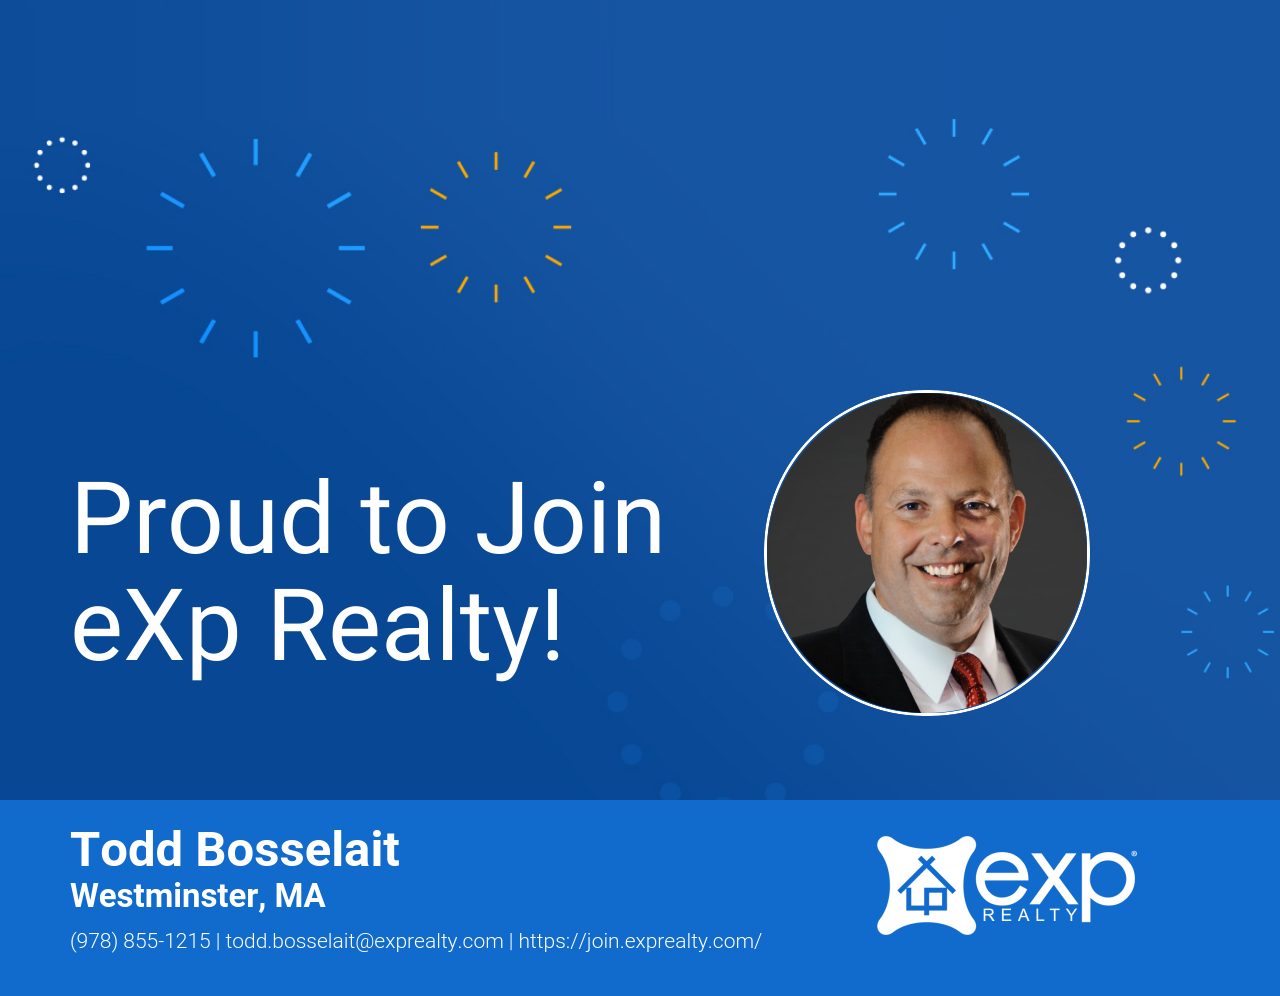 eXp Realty Welcomes Todd Bosselait!